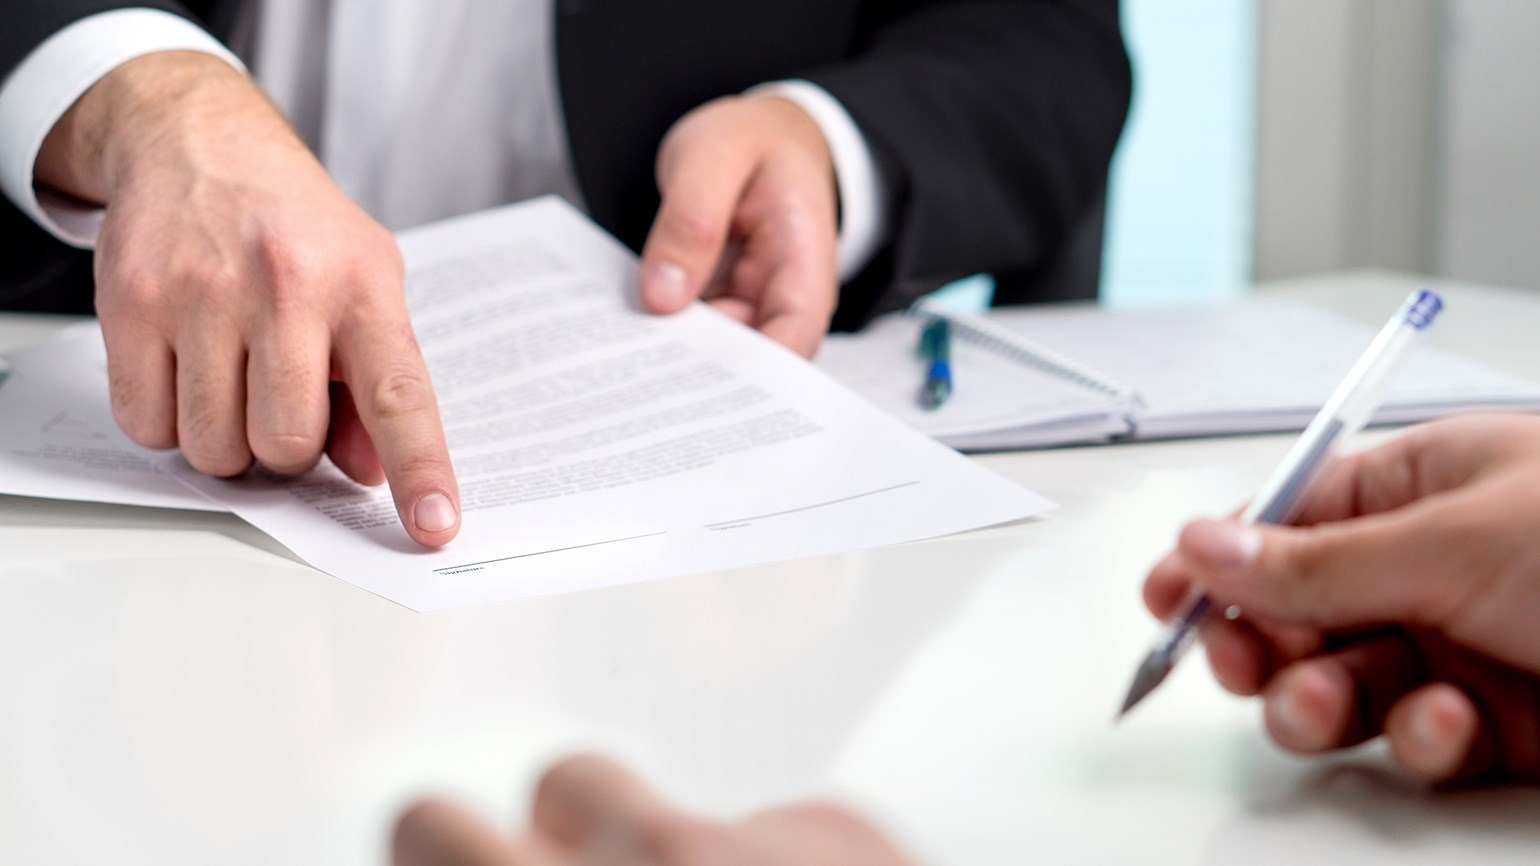 Agreement contract purchase acquisition [Credit: Tero Vesalainen/Shutterstock.com]